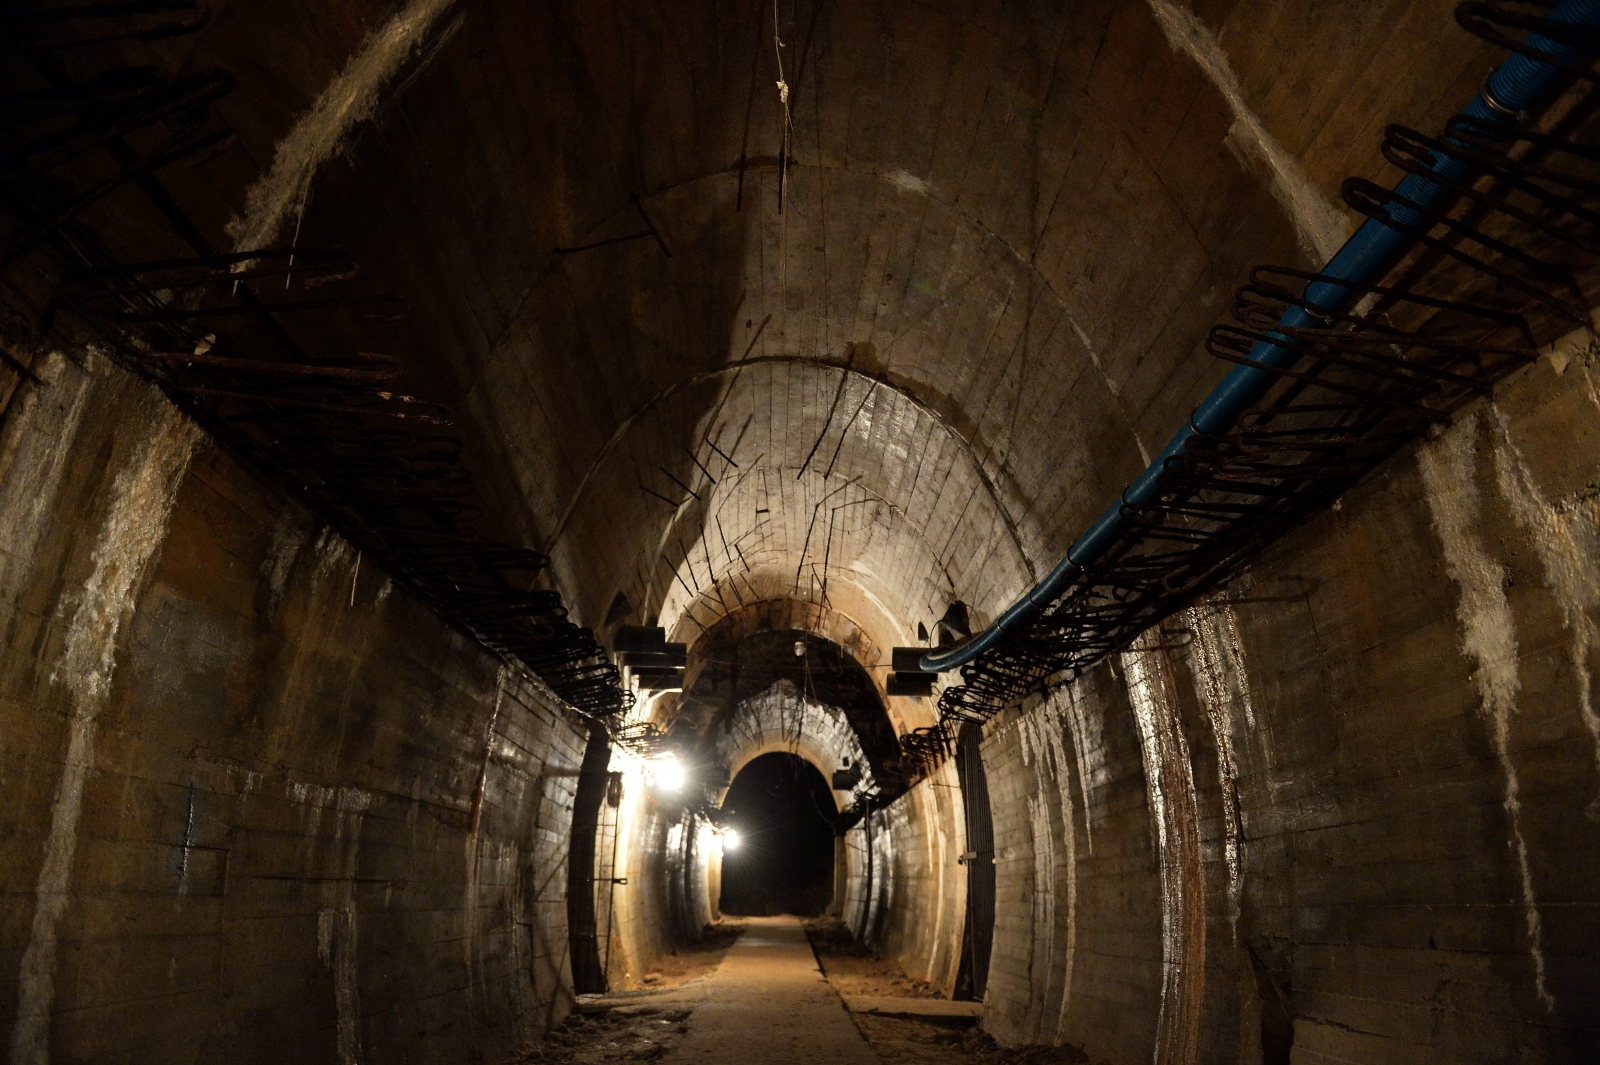 Russia stakes claim to the lost treasures in Poland's missing Nazi gold train